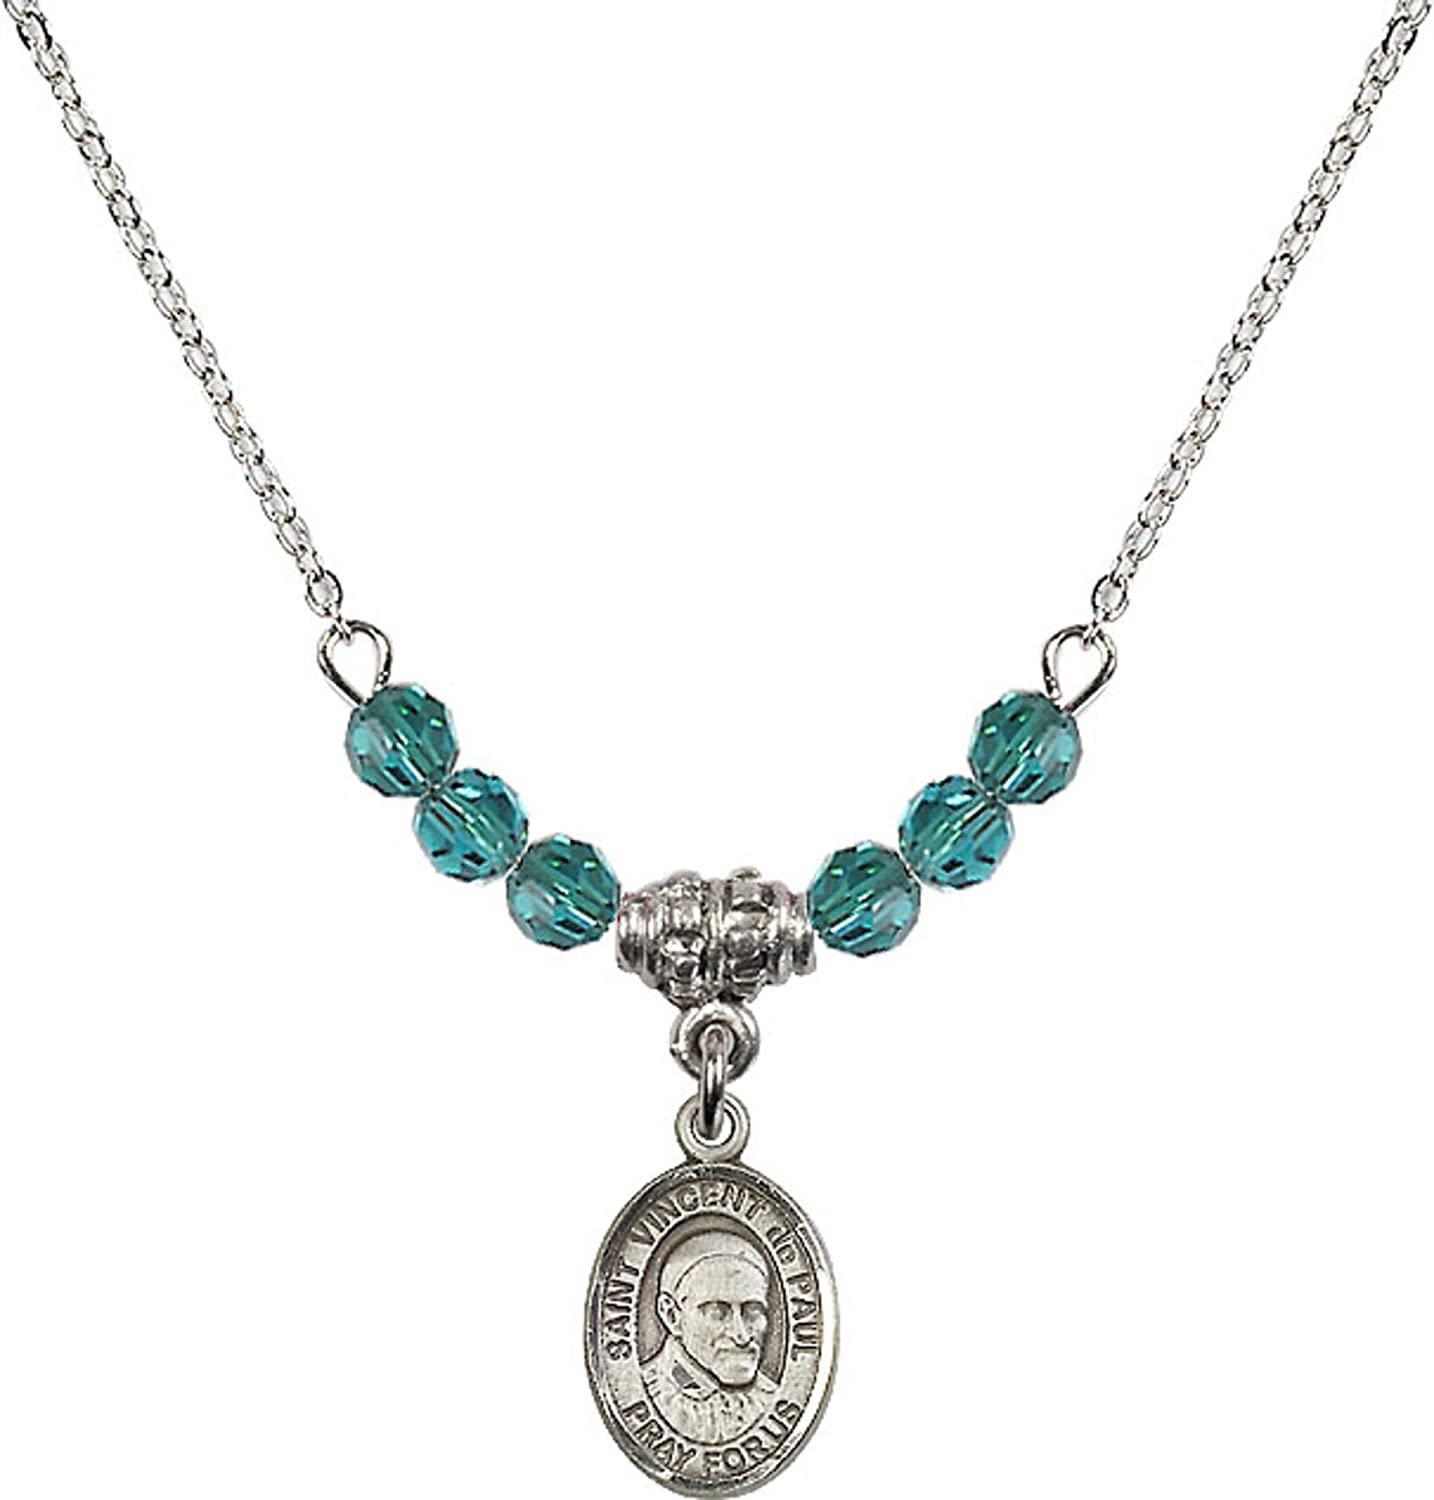 Bonyak Jewelry 18 Inch Rhodium Plated Necklace w// 4mm Blue December Birth Month Stone Beads and Saint Vincent de Paul Charm